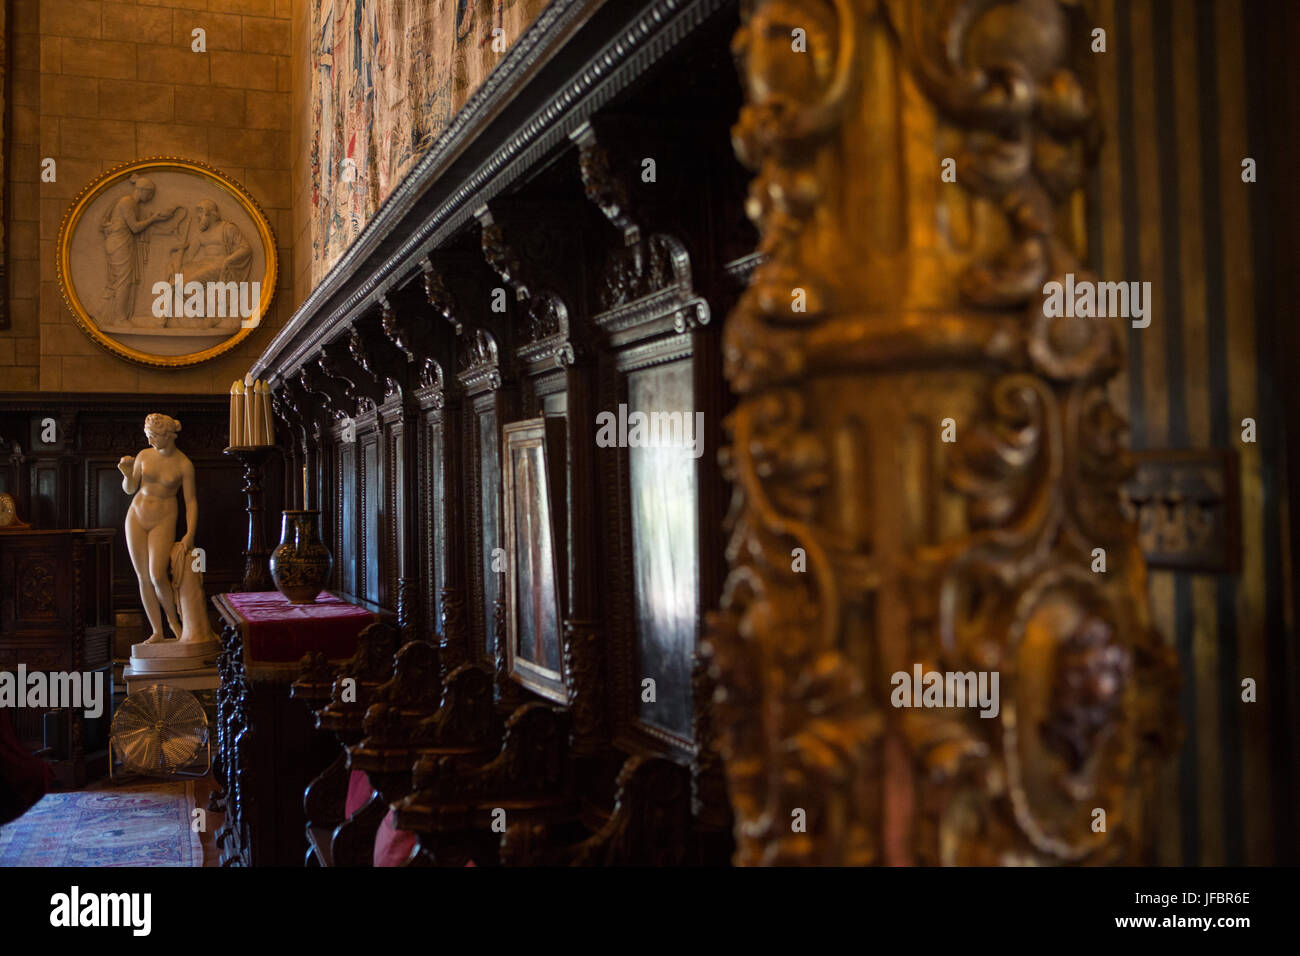 Hearst Castle interior walls are decorated with choir chair stalls, statues, and ornate decoration. - Stock Image